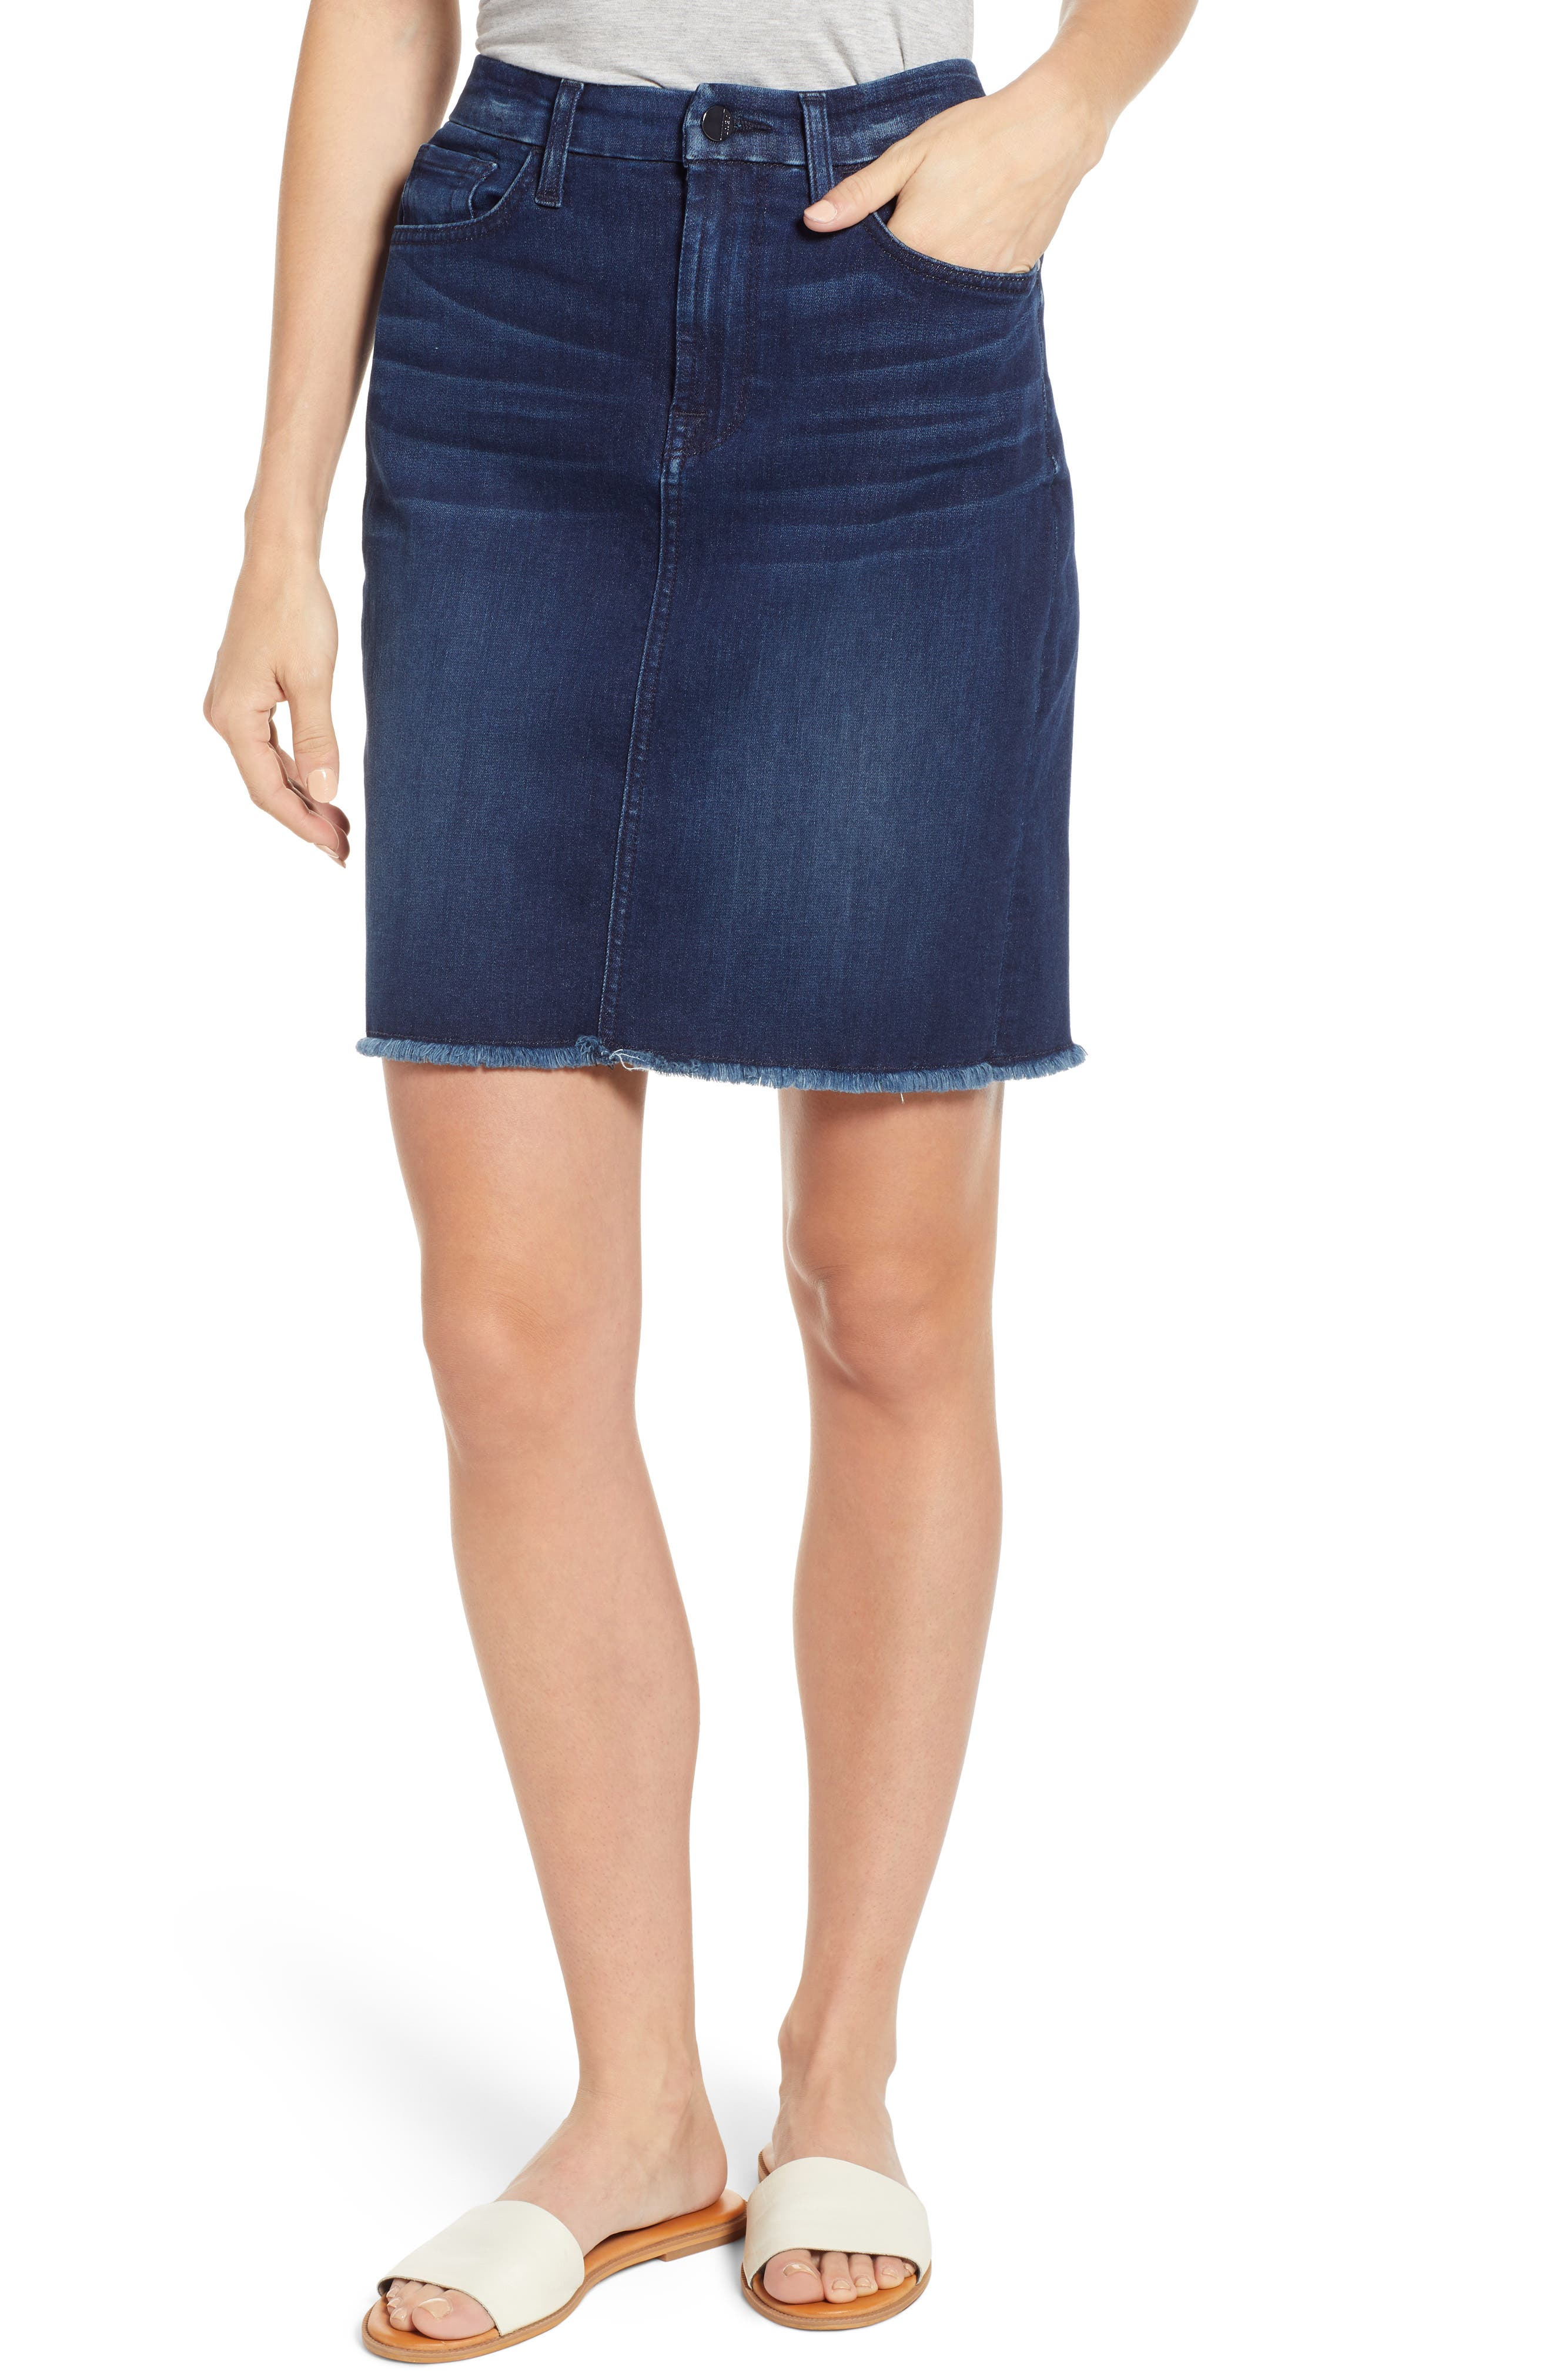 JEN7 BY 7 FOR ALL MANKIND, Raw Hem Denim Pencil Skirt, Main thumbnail 1, color, IMPERIAL INDIGO